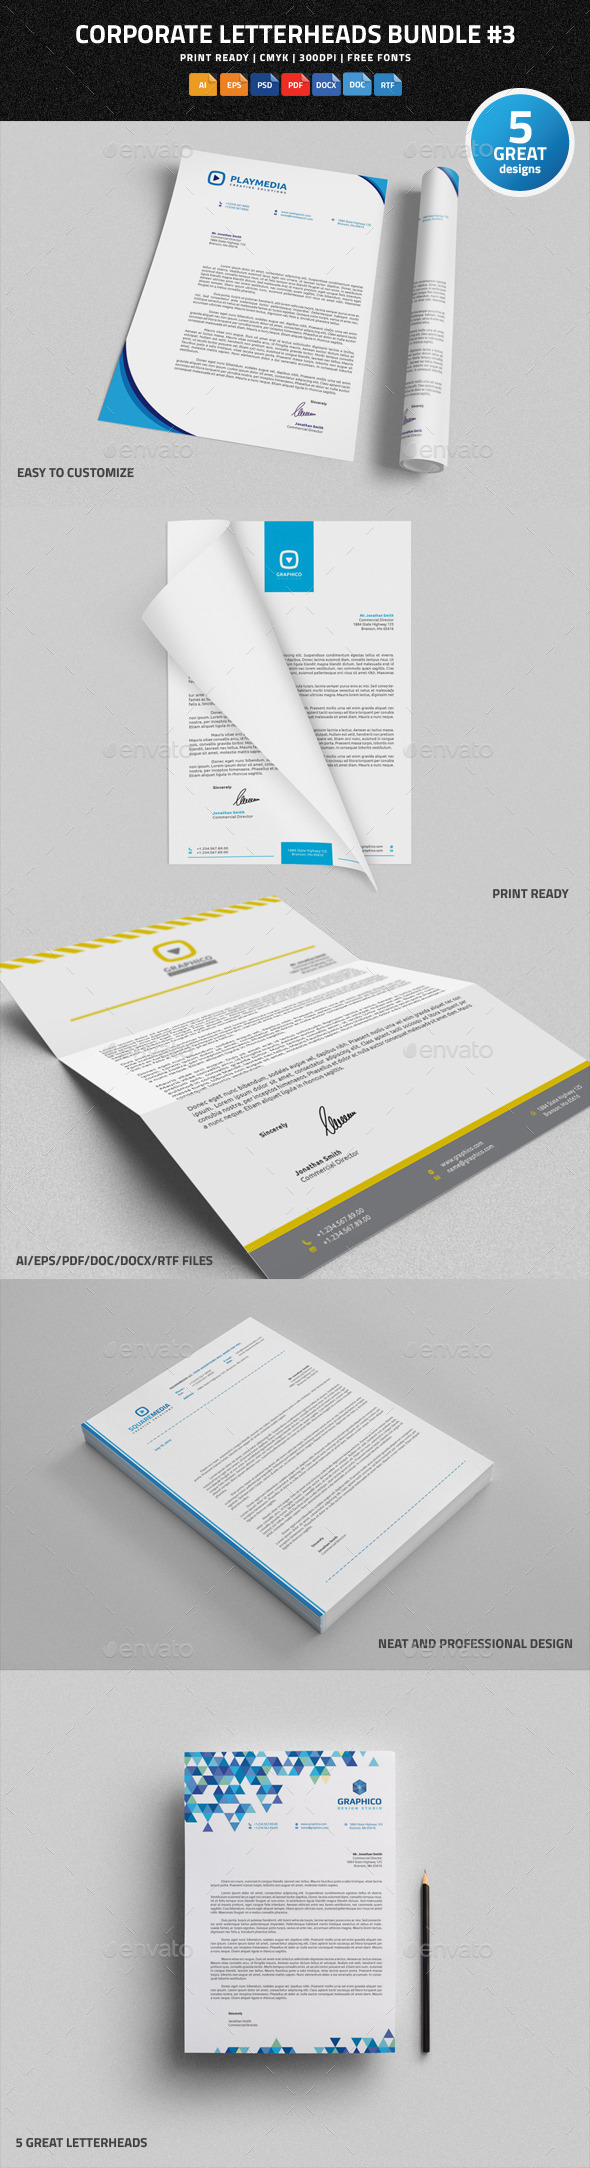 GraphicRiver Corporate Letterheads Bundle #3 9689983